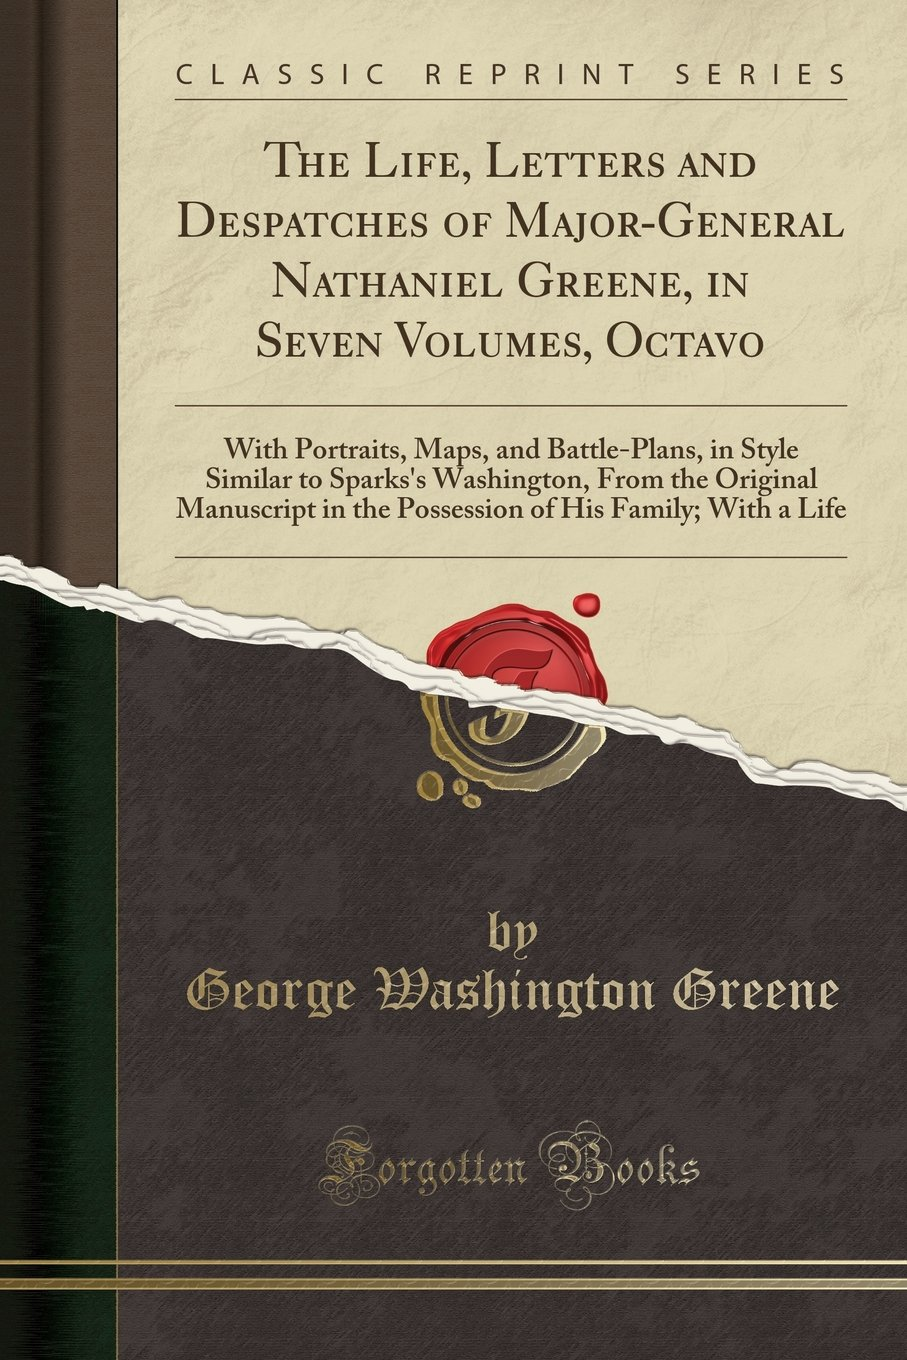 The Life, Letters and Despatches of Major-General Nathaniel Greene, in Seven Volumes, Octavo: With Portraits, Maps, and Battle-Plans, in Style Similar ... in the Possession of His Family; With a Life ebook